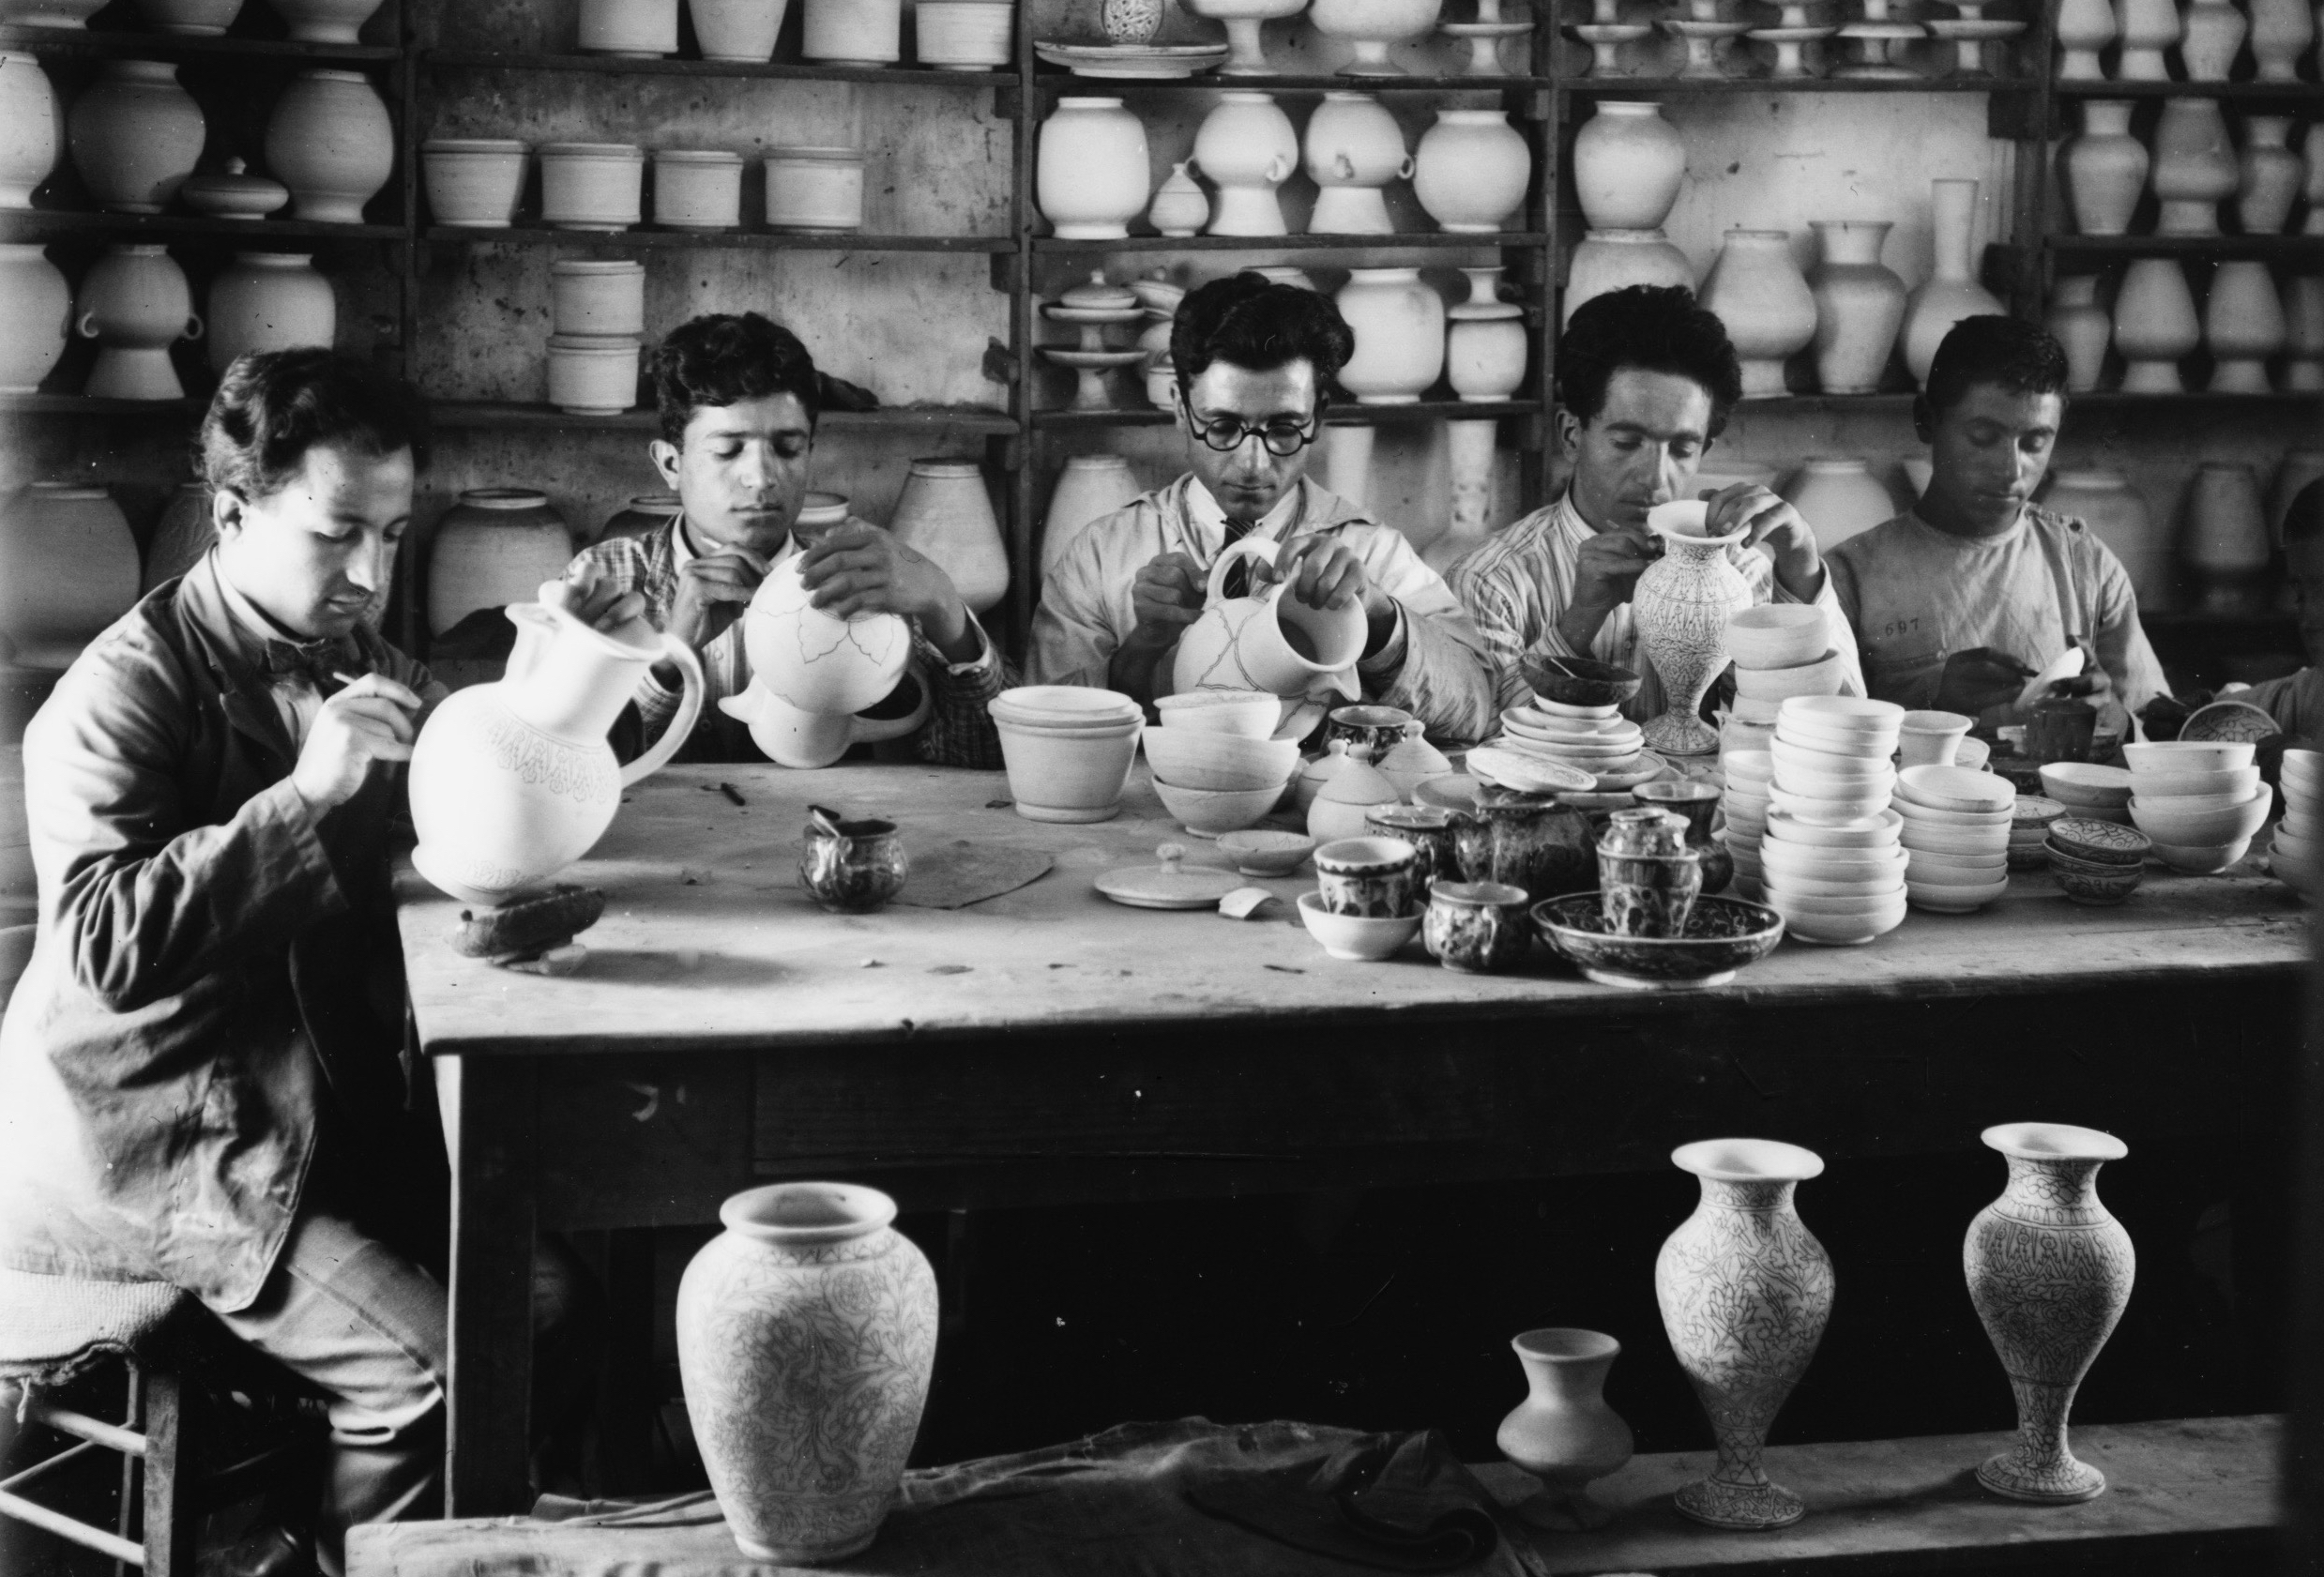 Young men drawing designs on pottery, c. 1922. (Library of Congress, Matson Collection)